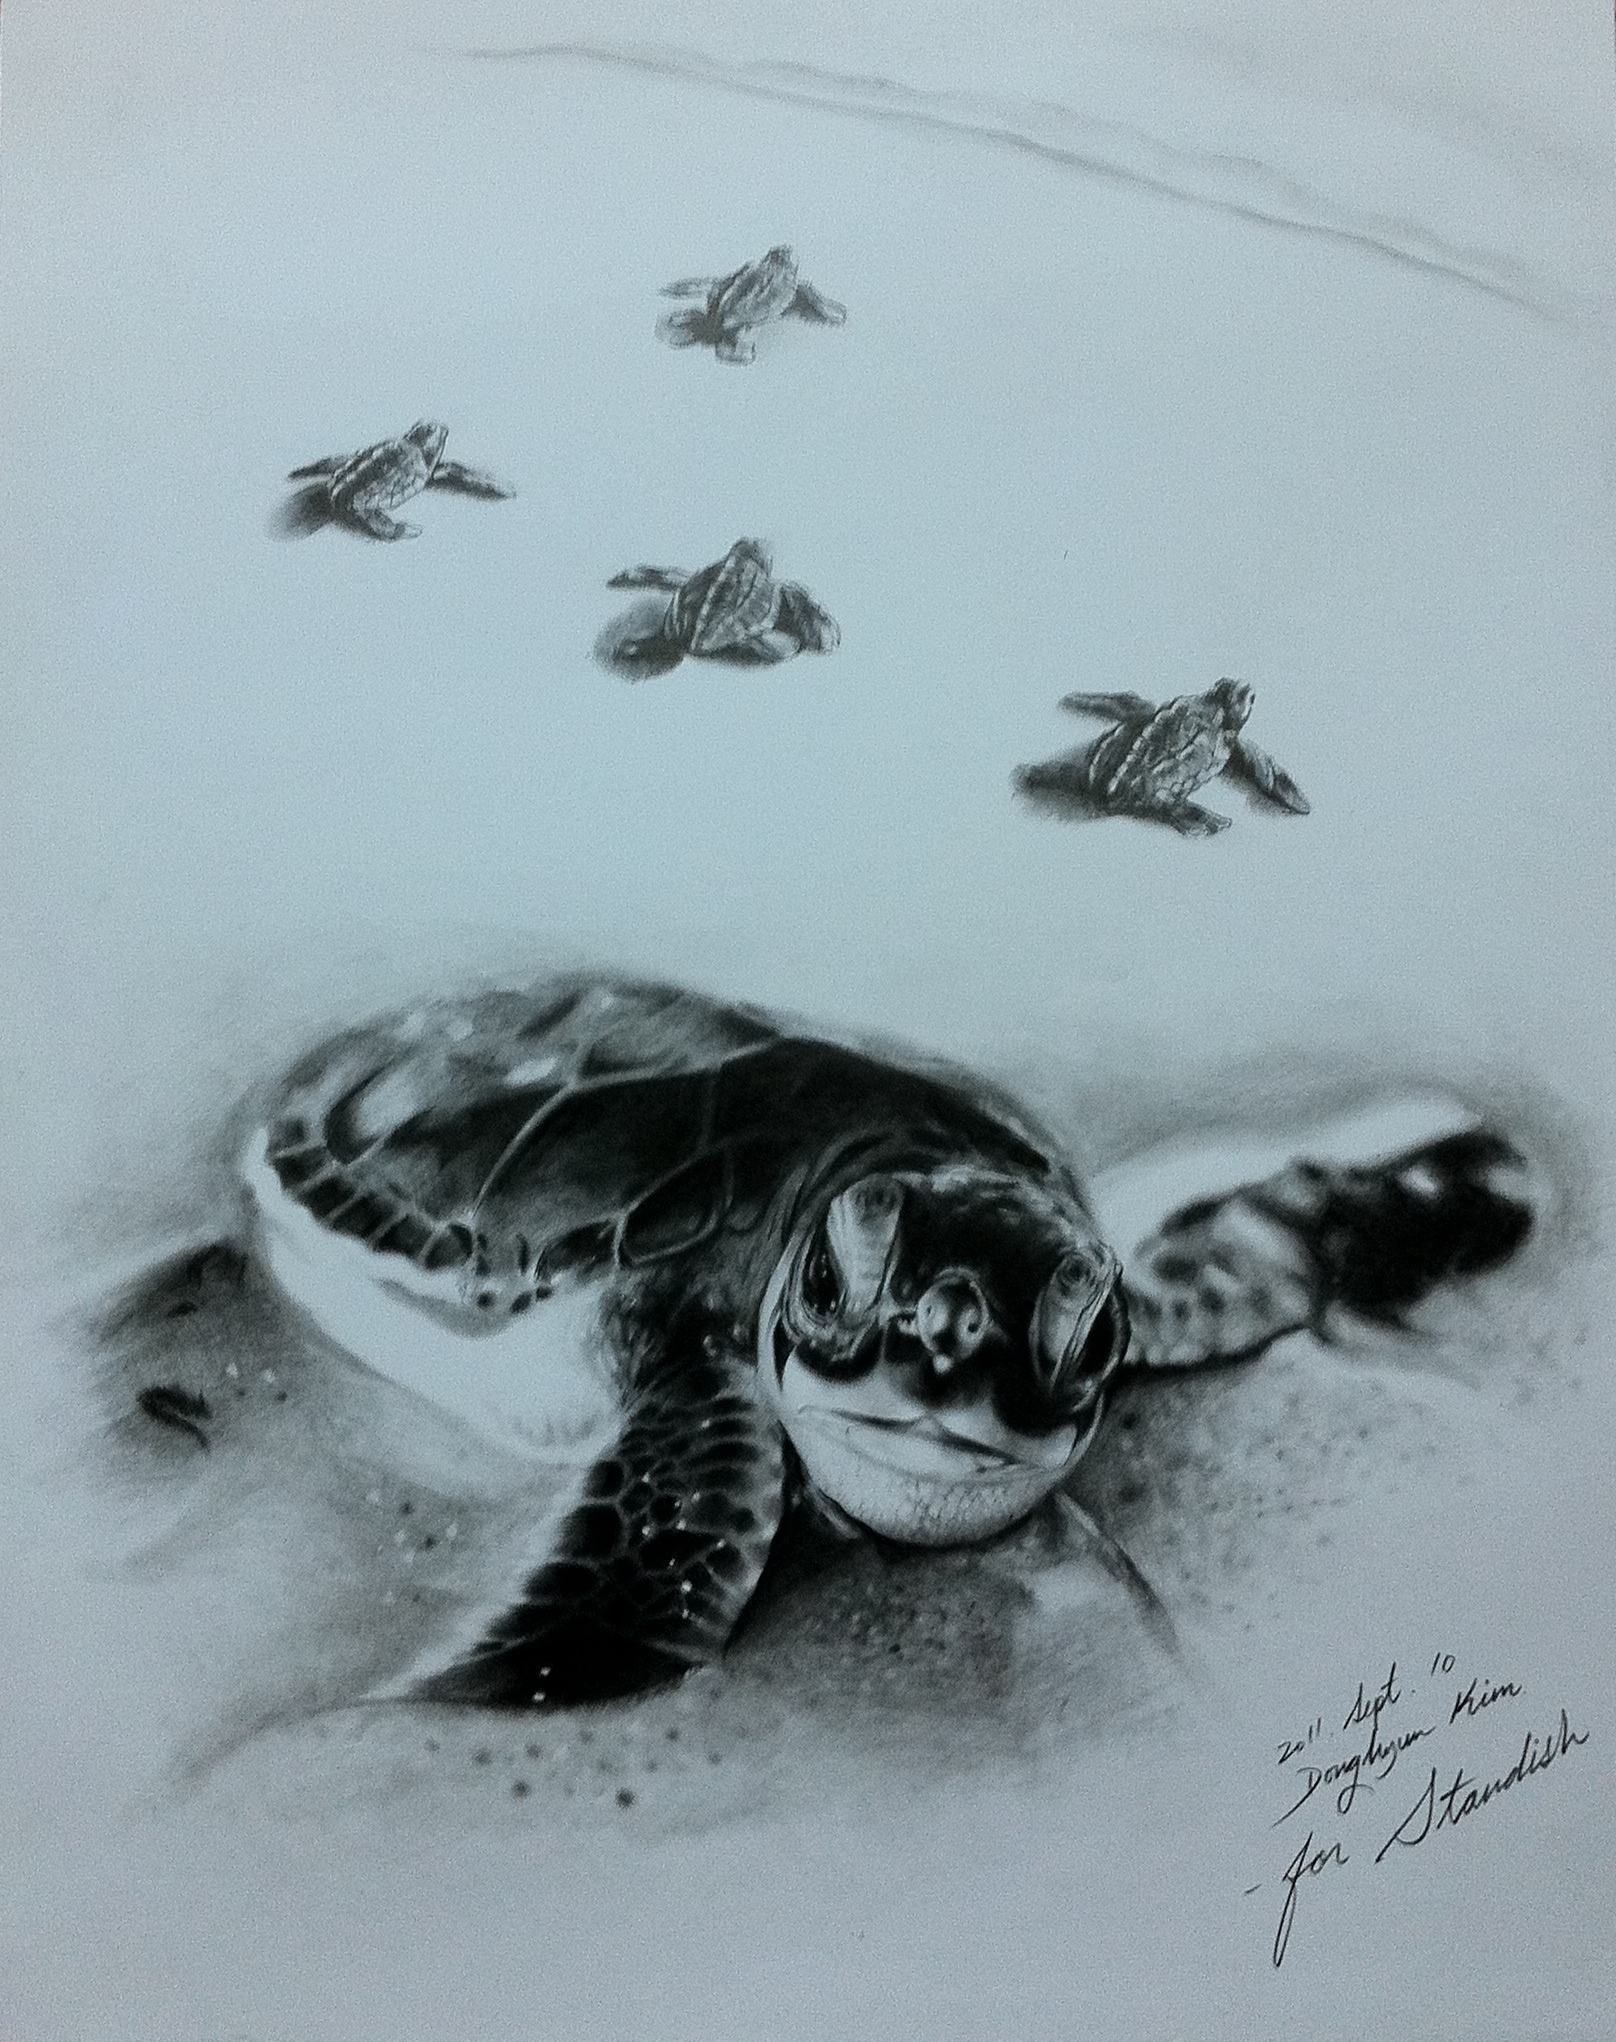 Gallery For gt Baby Sea Turtles Drawings